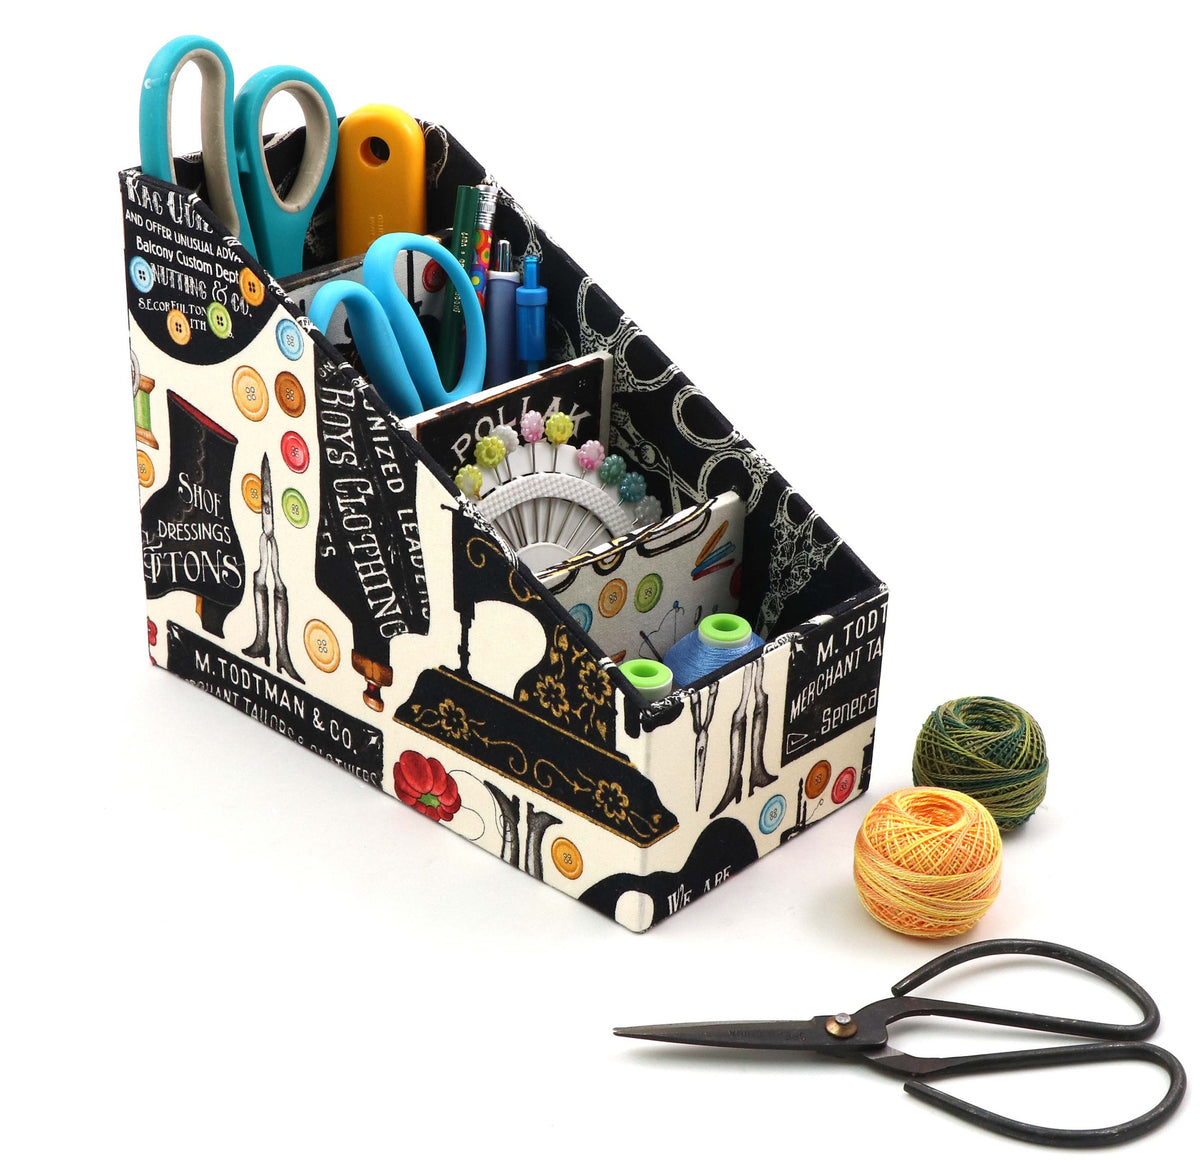 Fabric caddy organizer DIY kit, remote control caddy, fabric box kit, art supply organizer, cartonnage kit 170 - Colorway Arts